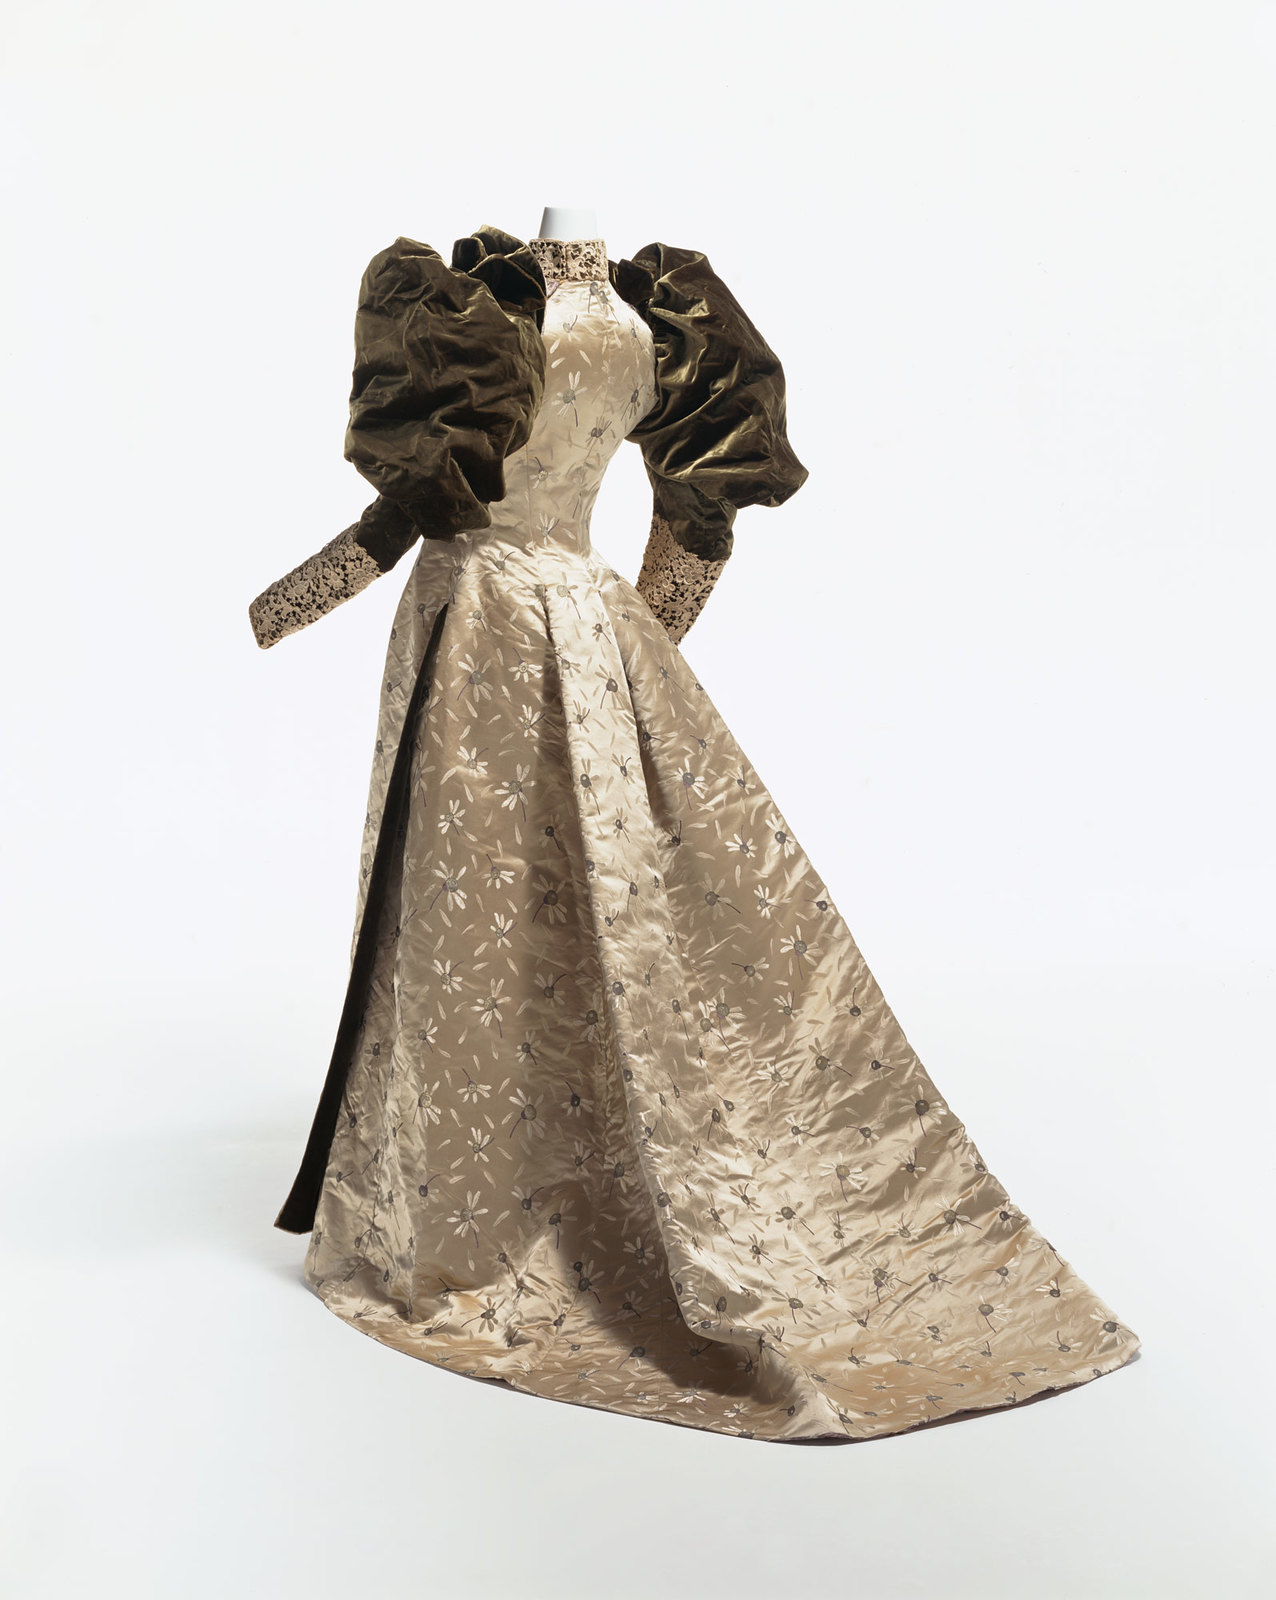 1892. Dinner Dress. silk satin with woven chrysanthemum pattern; large velvet gigot sleeves; lace decoration on cuffs and collar. KCI